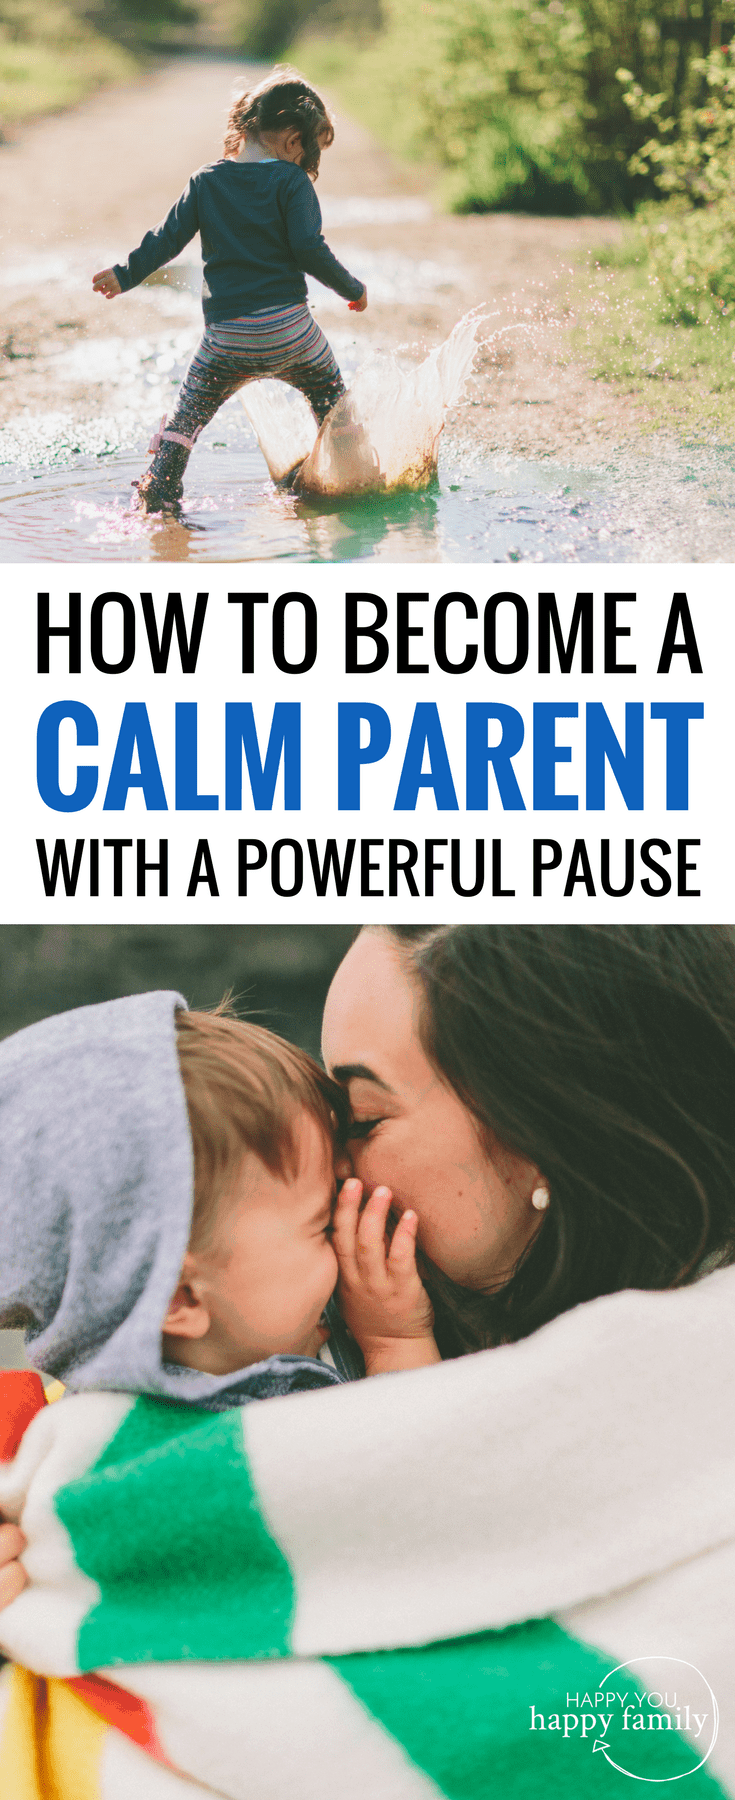 The Secret to Calm Parenting That Every Parent Should Know